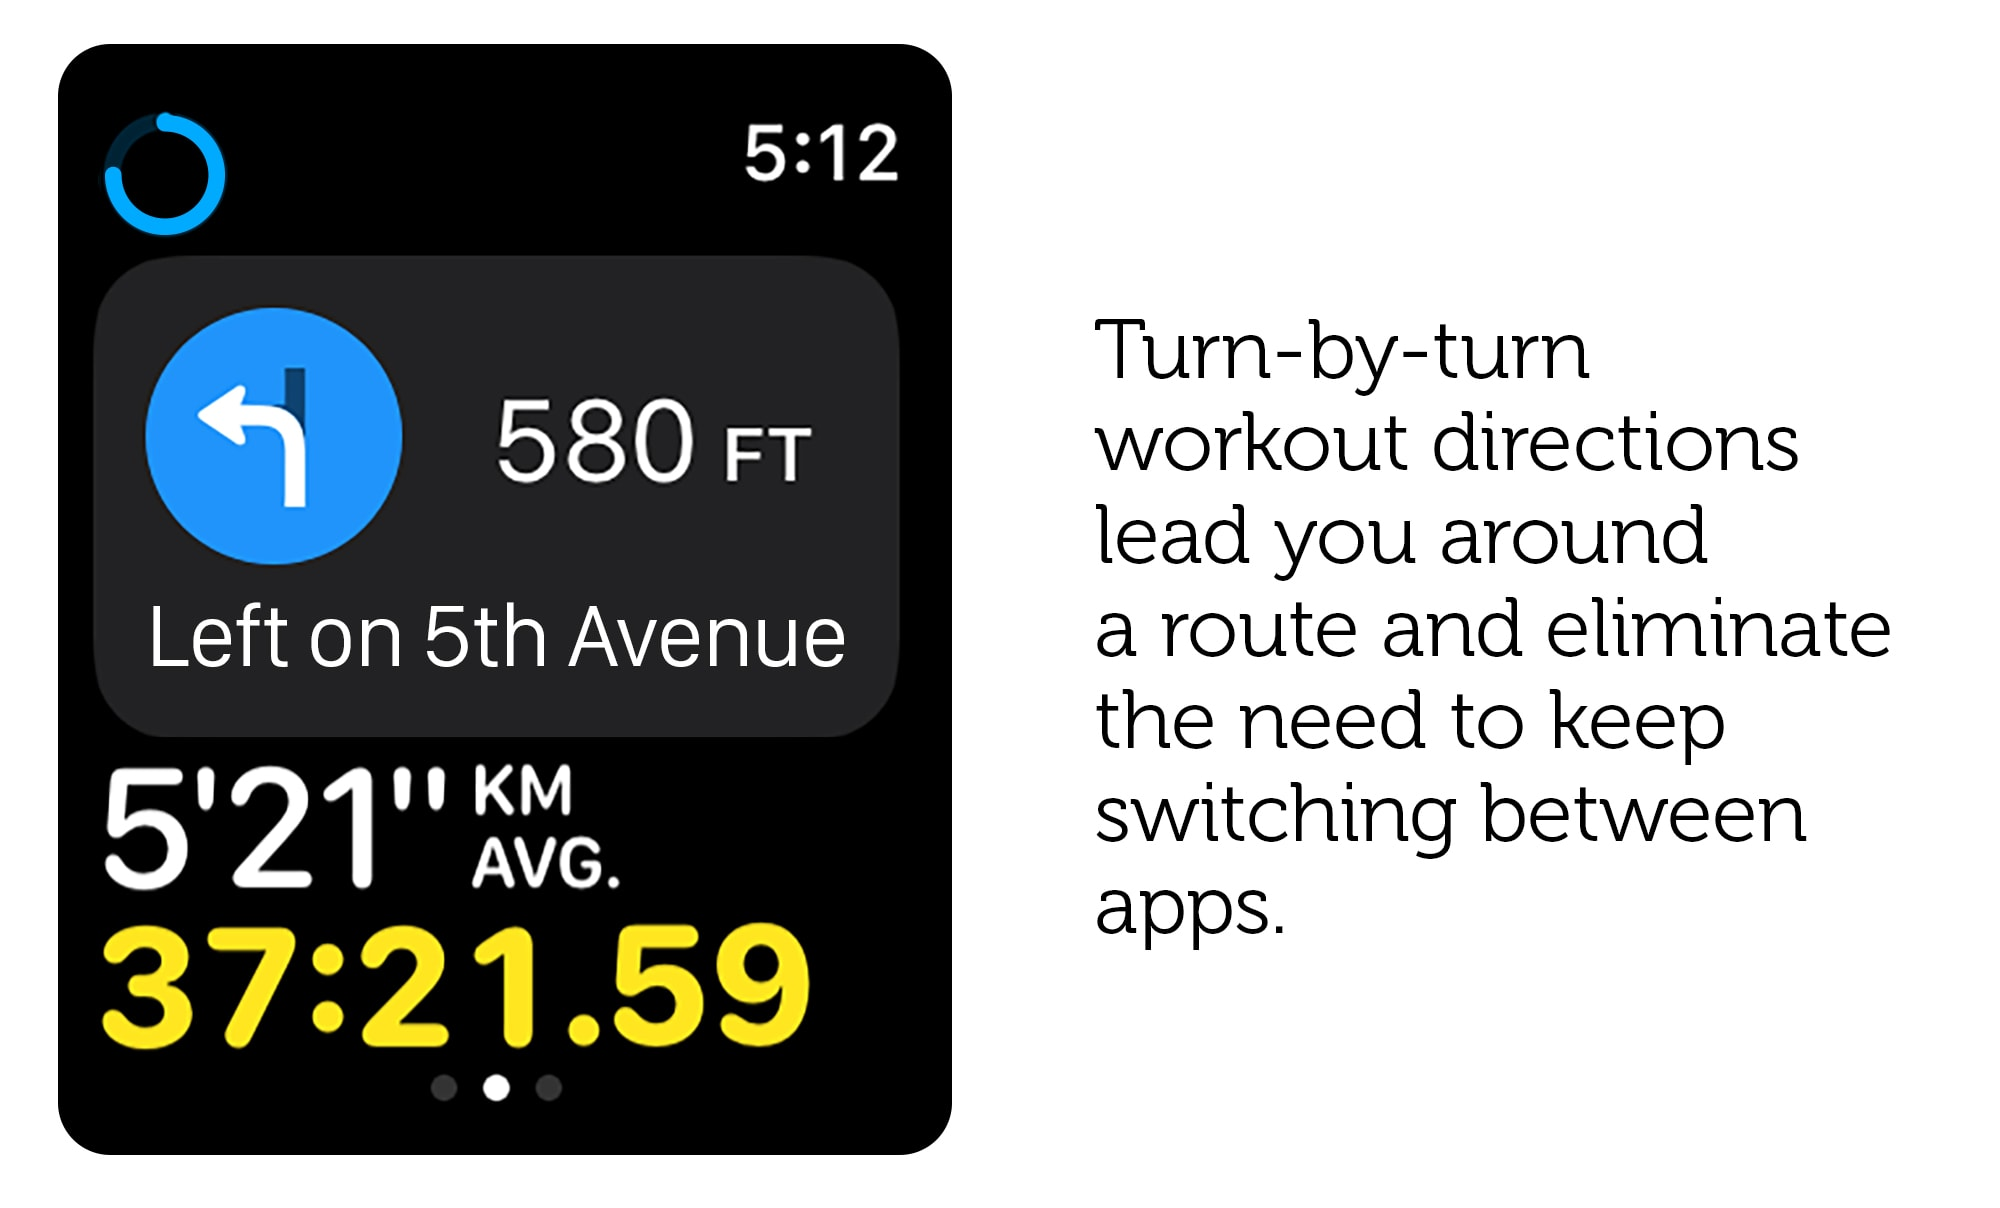 Turn-by-turn directions would be cool in the Workout app